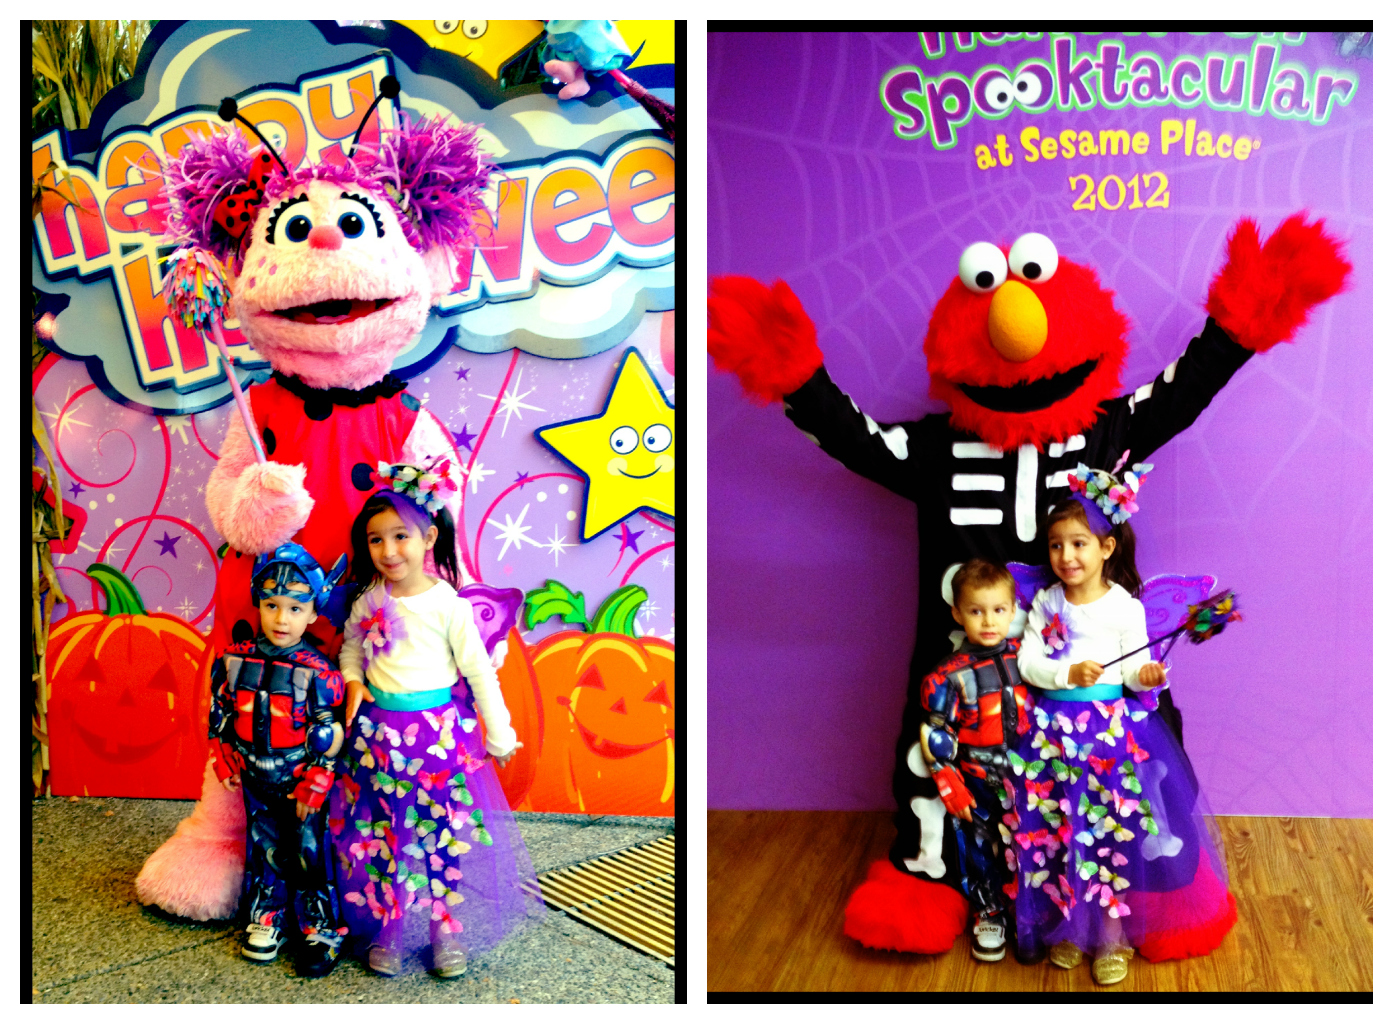 and costume clad characters had so much love to spread - Sesame Place Halloween